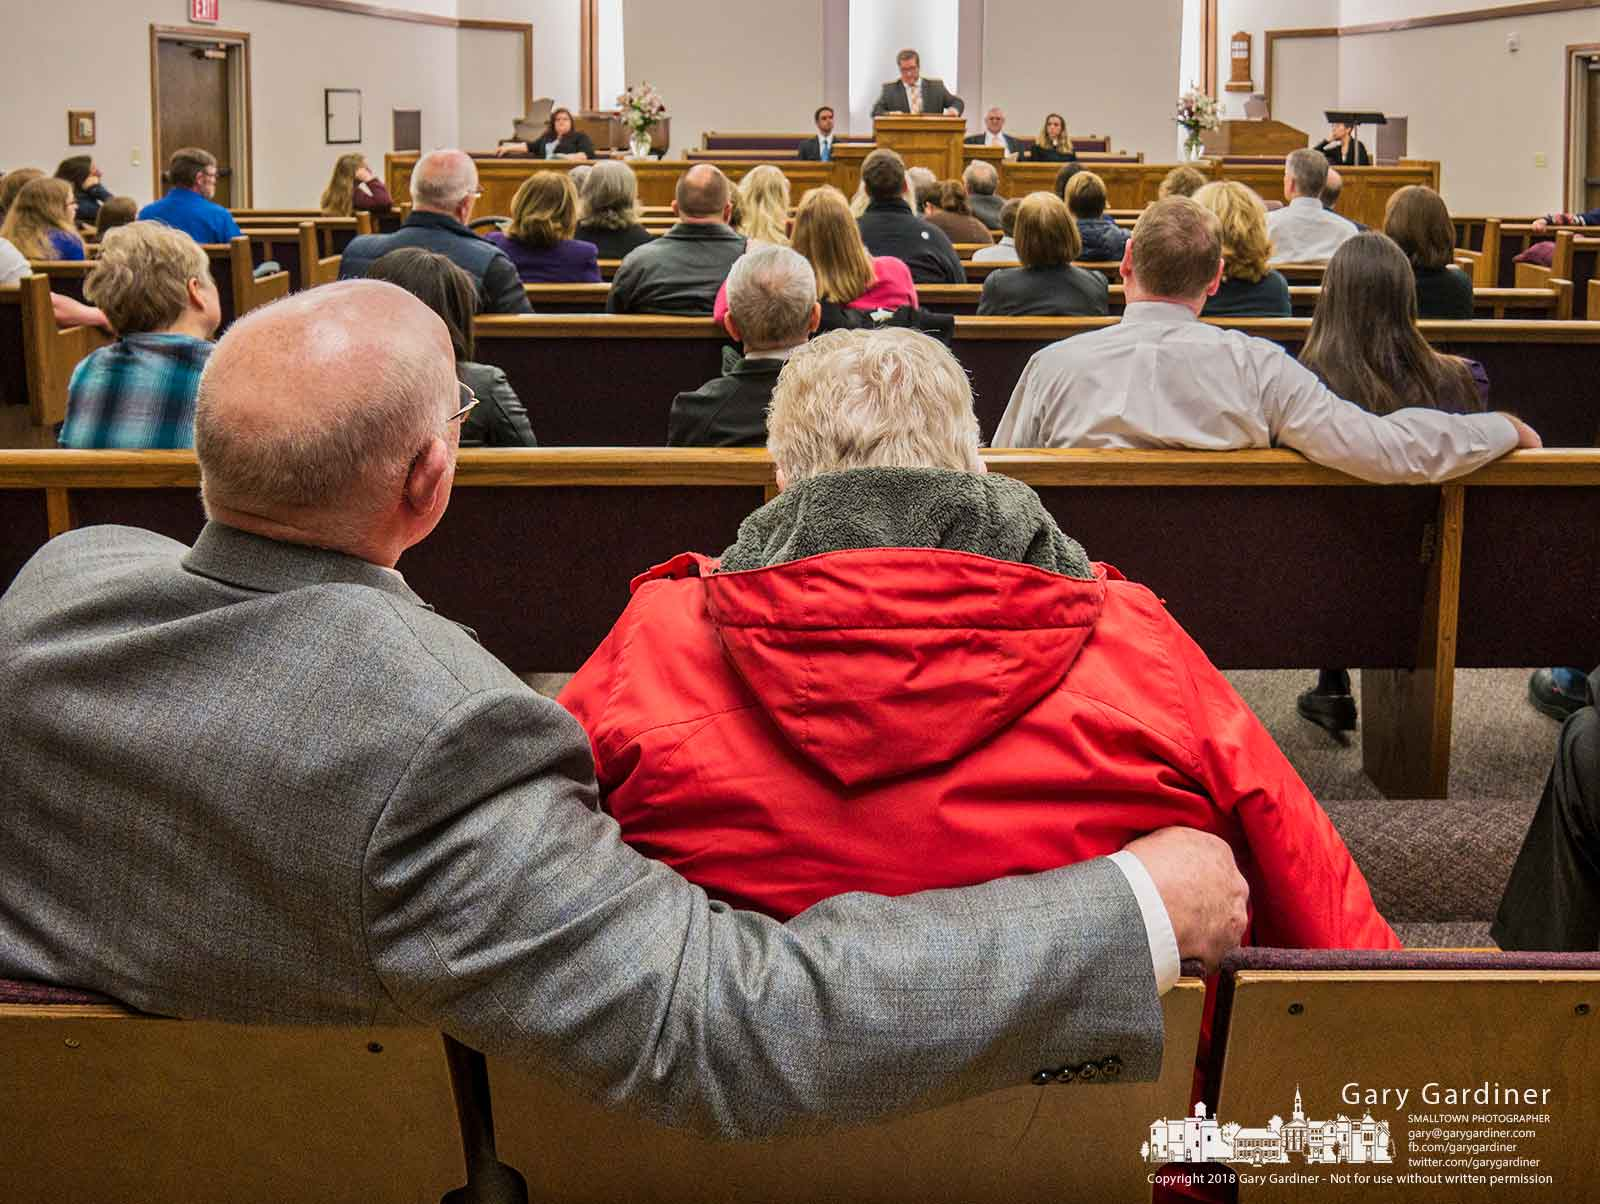 Mourners gather for an interfaith prayer vigil at the Church of Jesus Christ of Latter-Day Saints for Westerville Police Officers Anthony Morelli and Eric Joering who were killed last week. My Final photo for Feb. 18, 2018.